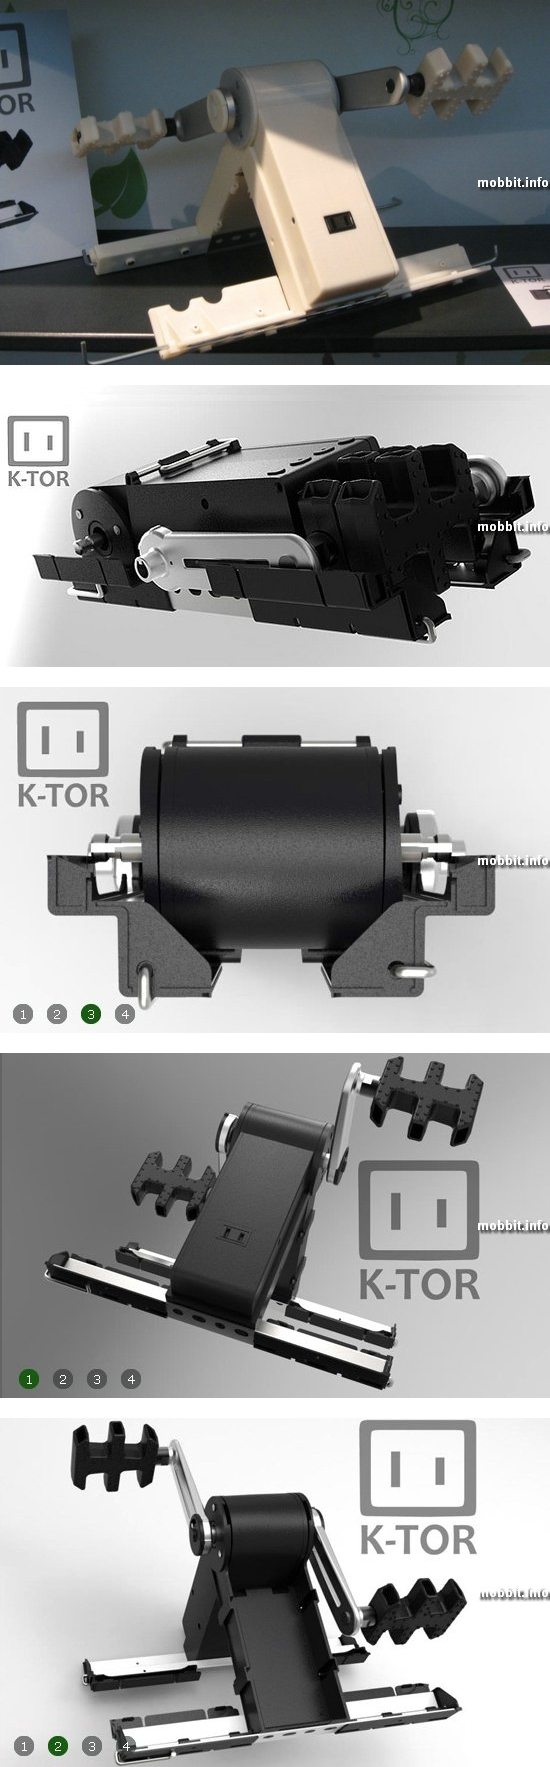 K-TOR Power Box